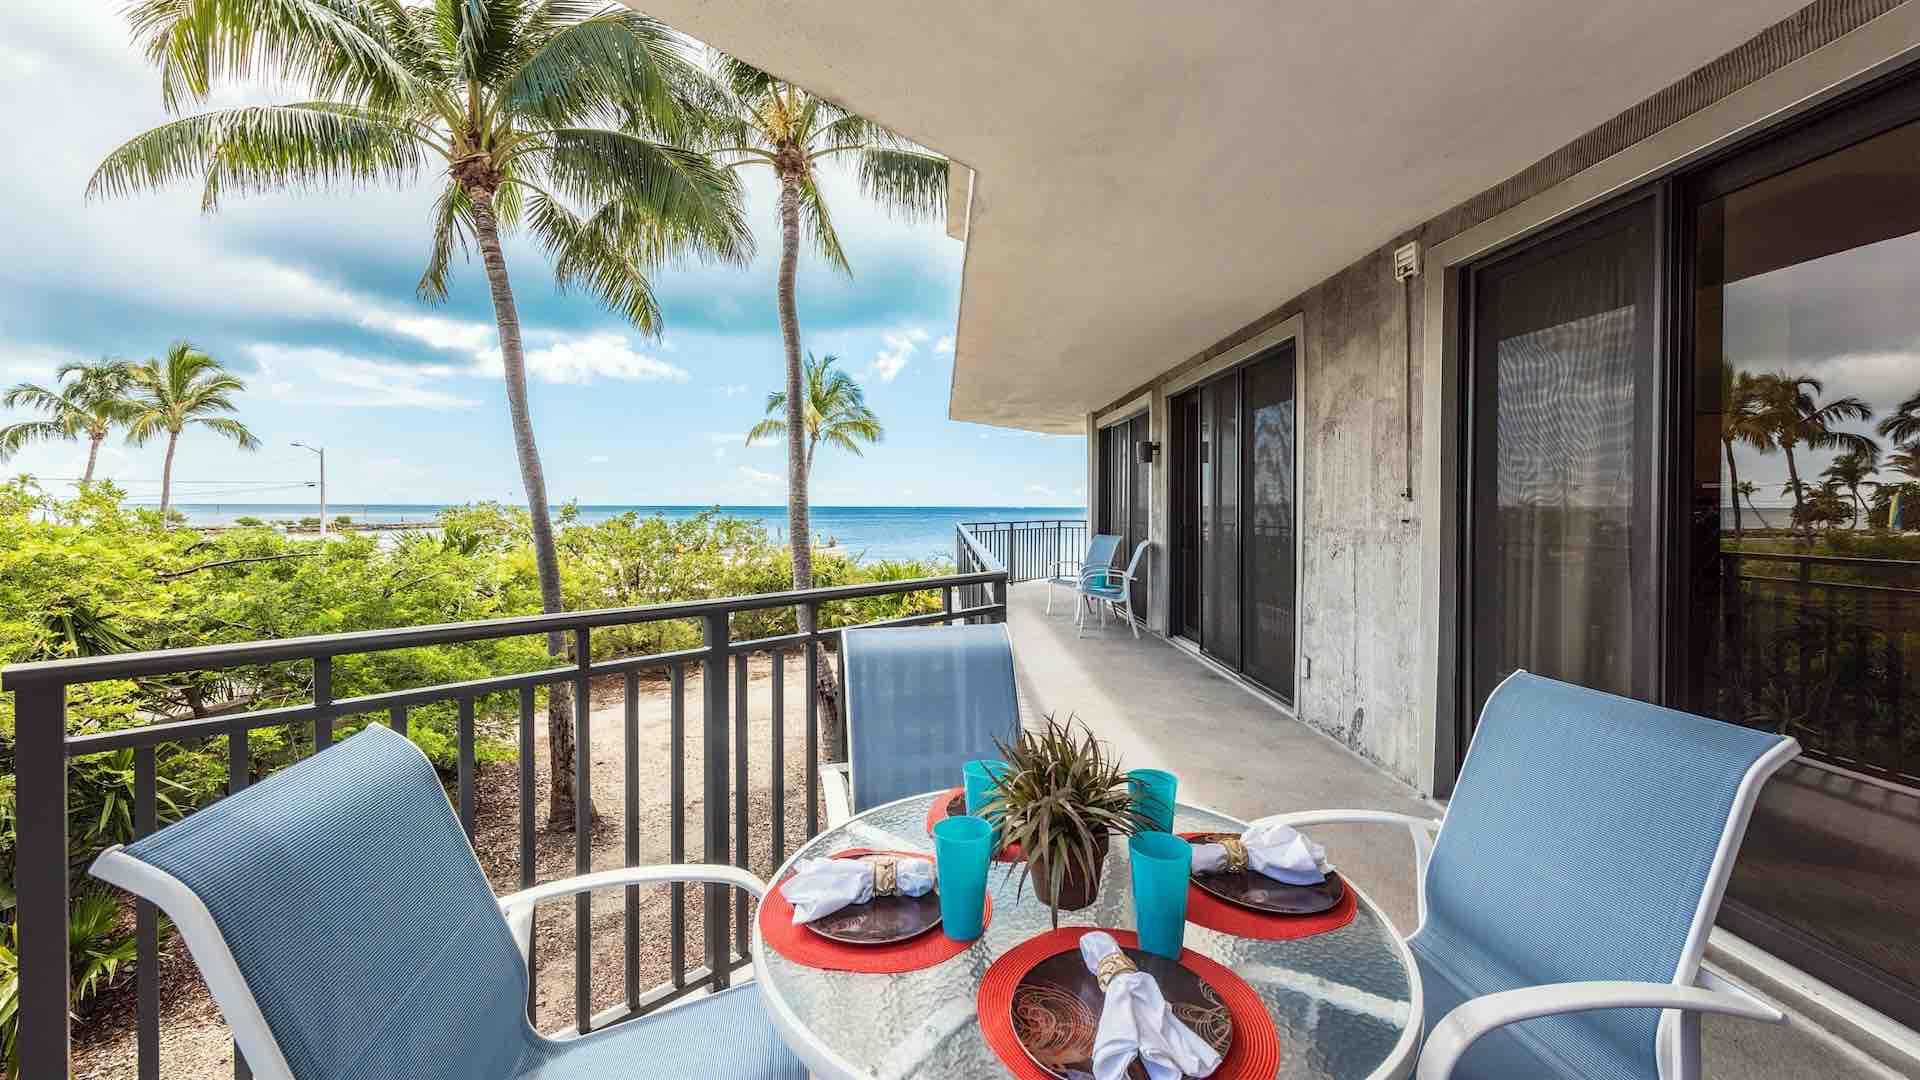 Enjoy an outdoor meal on the balcony using the dining set...